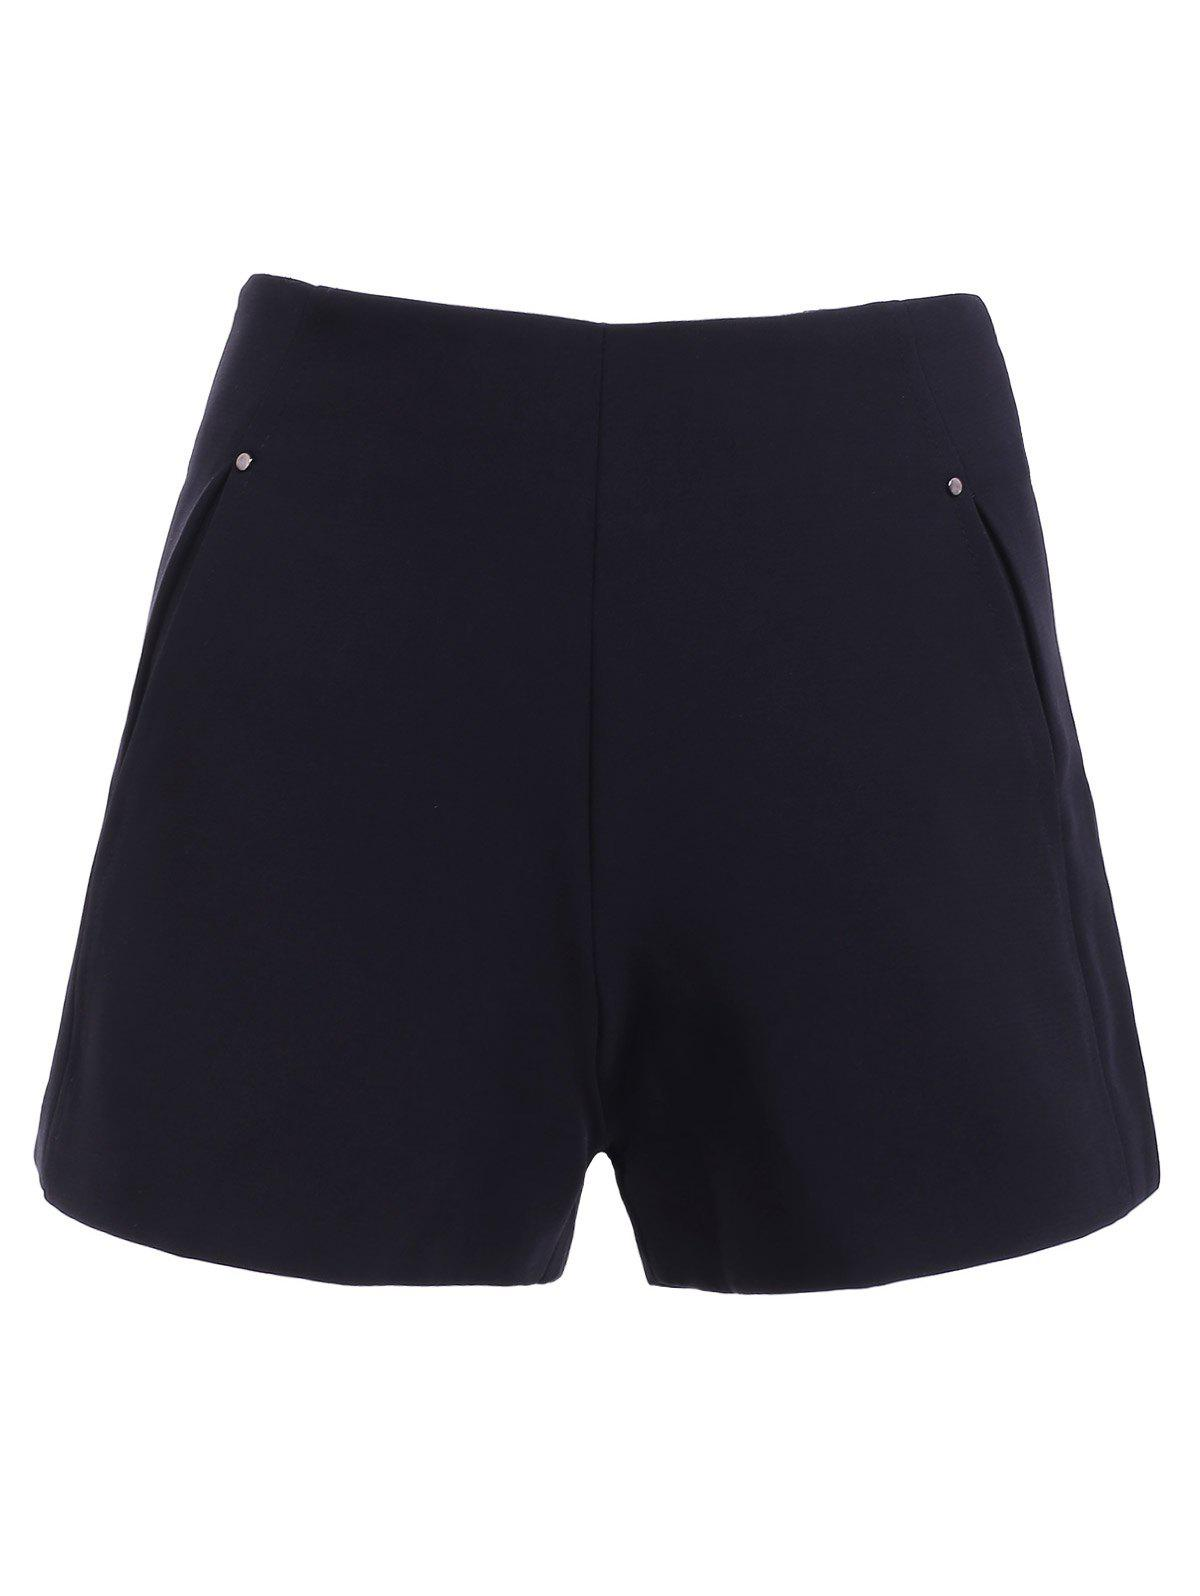 Simple Women's Solid Color High Waist Pockets Shorts